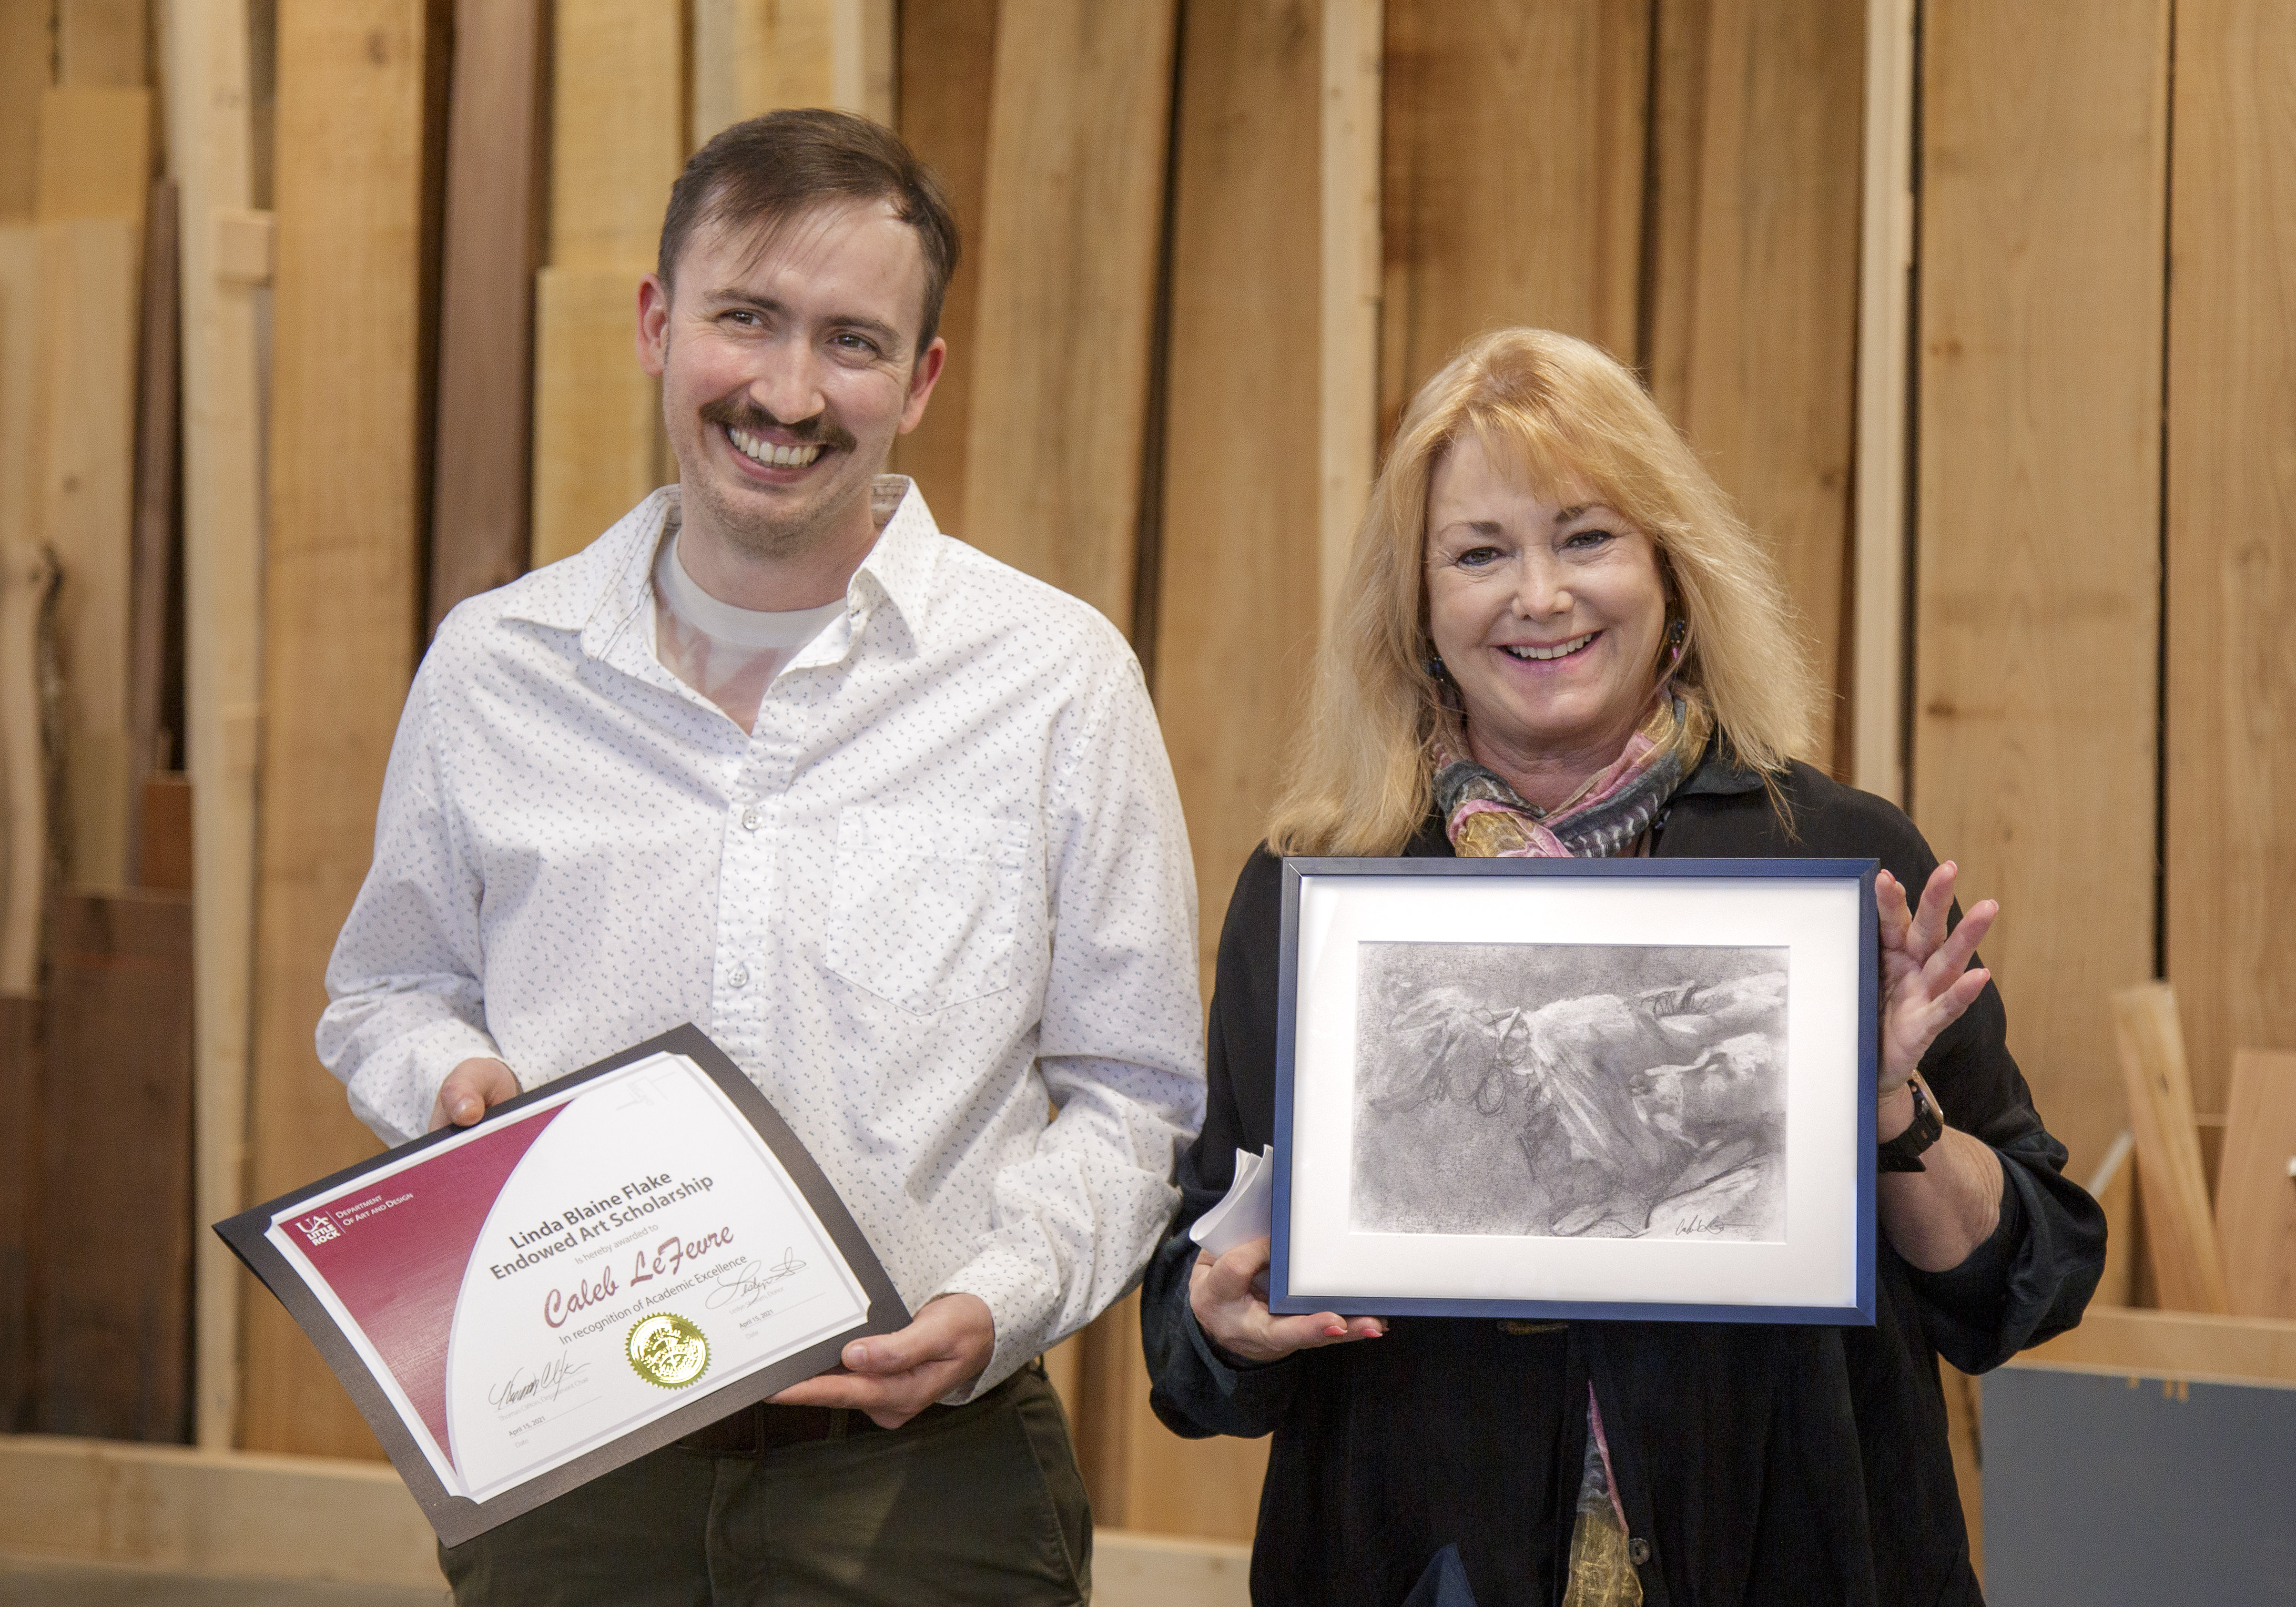 UA Little Rock studio art major Caleb LeFevre, left, was awarded the Linda Blaine Flake Endowed Art Scholarship by philanthropist Lesley Shallom during an event at the Windgate Center for Art + Design in celebration of World Art Day. Shellam is holding one of LeFevre's charcoal art works.